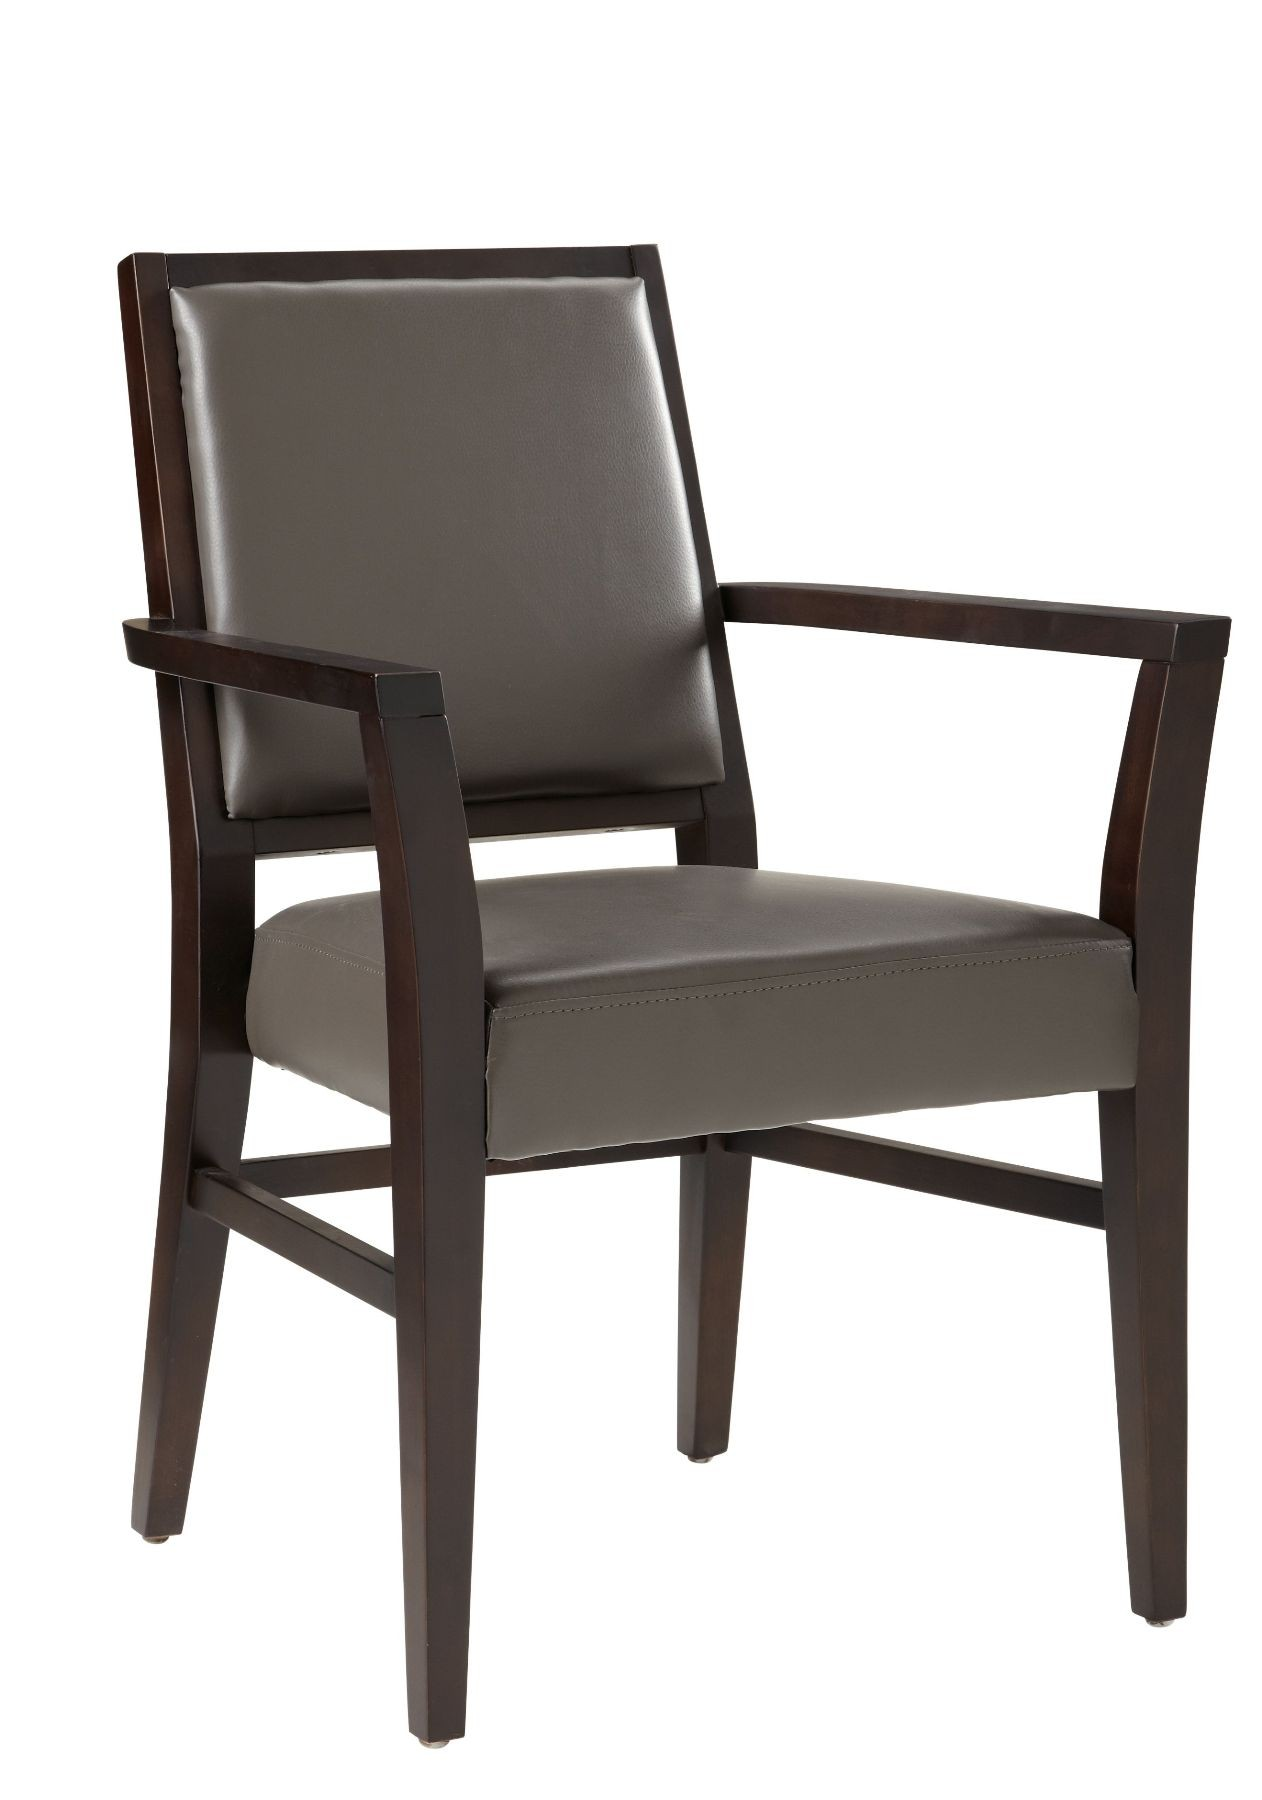 Citizen Grey Arm Chair From Sunpan 29058 Coleman Furniture